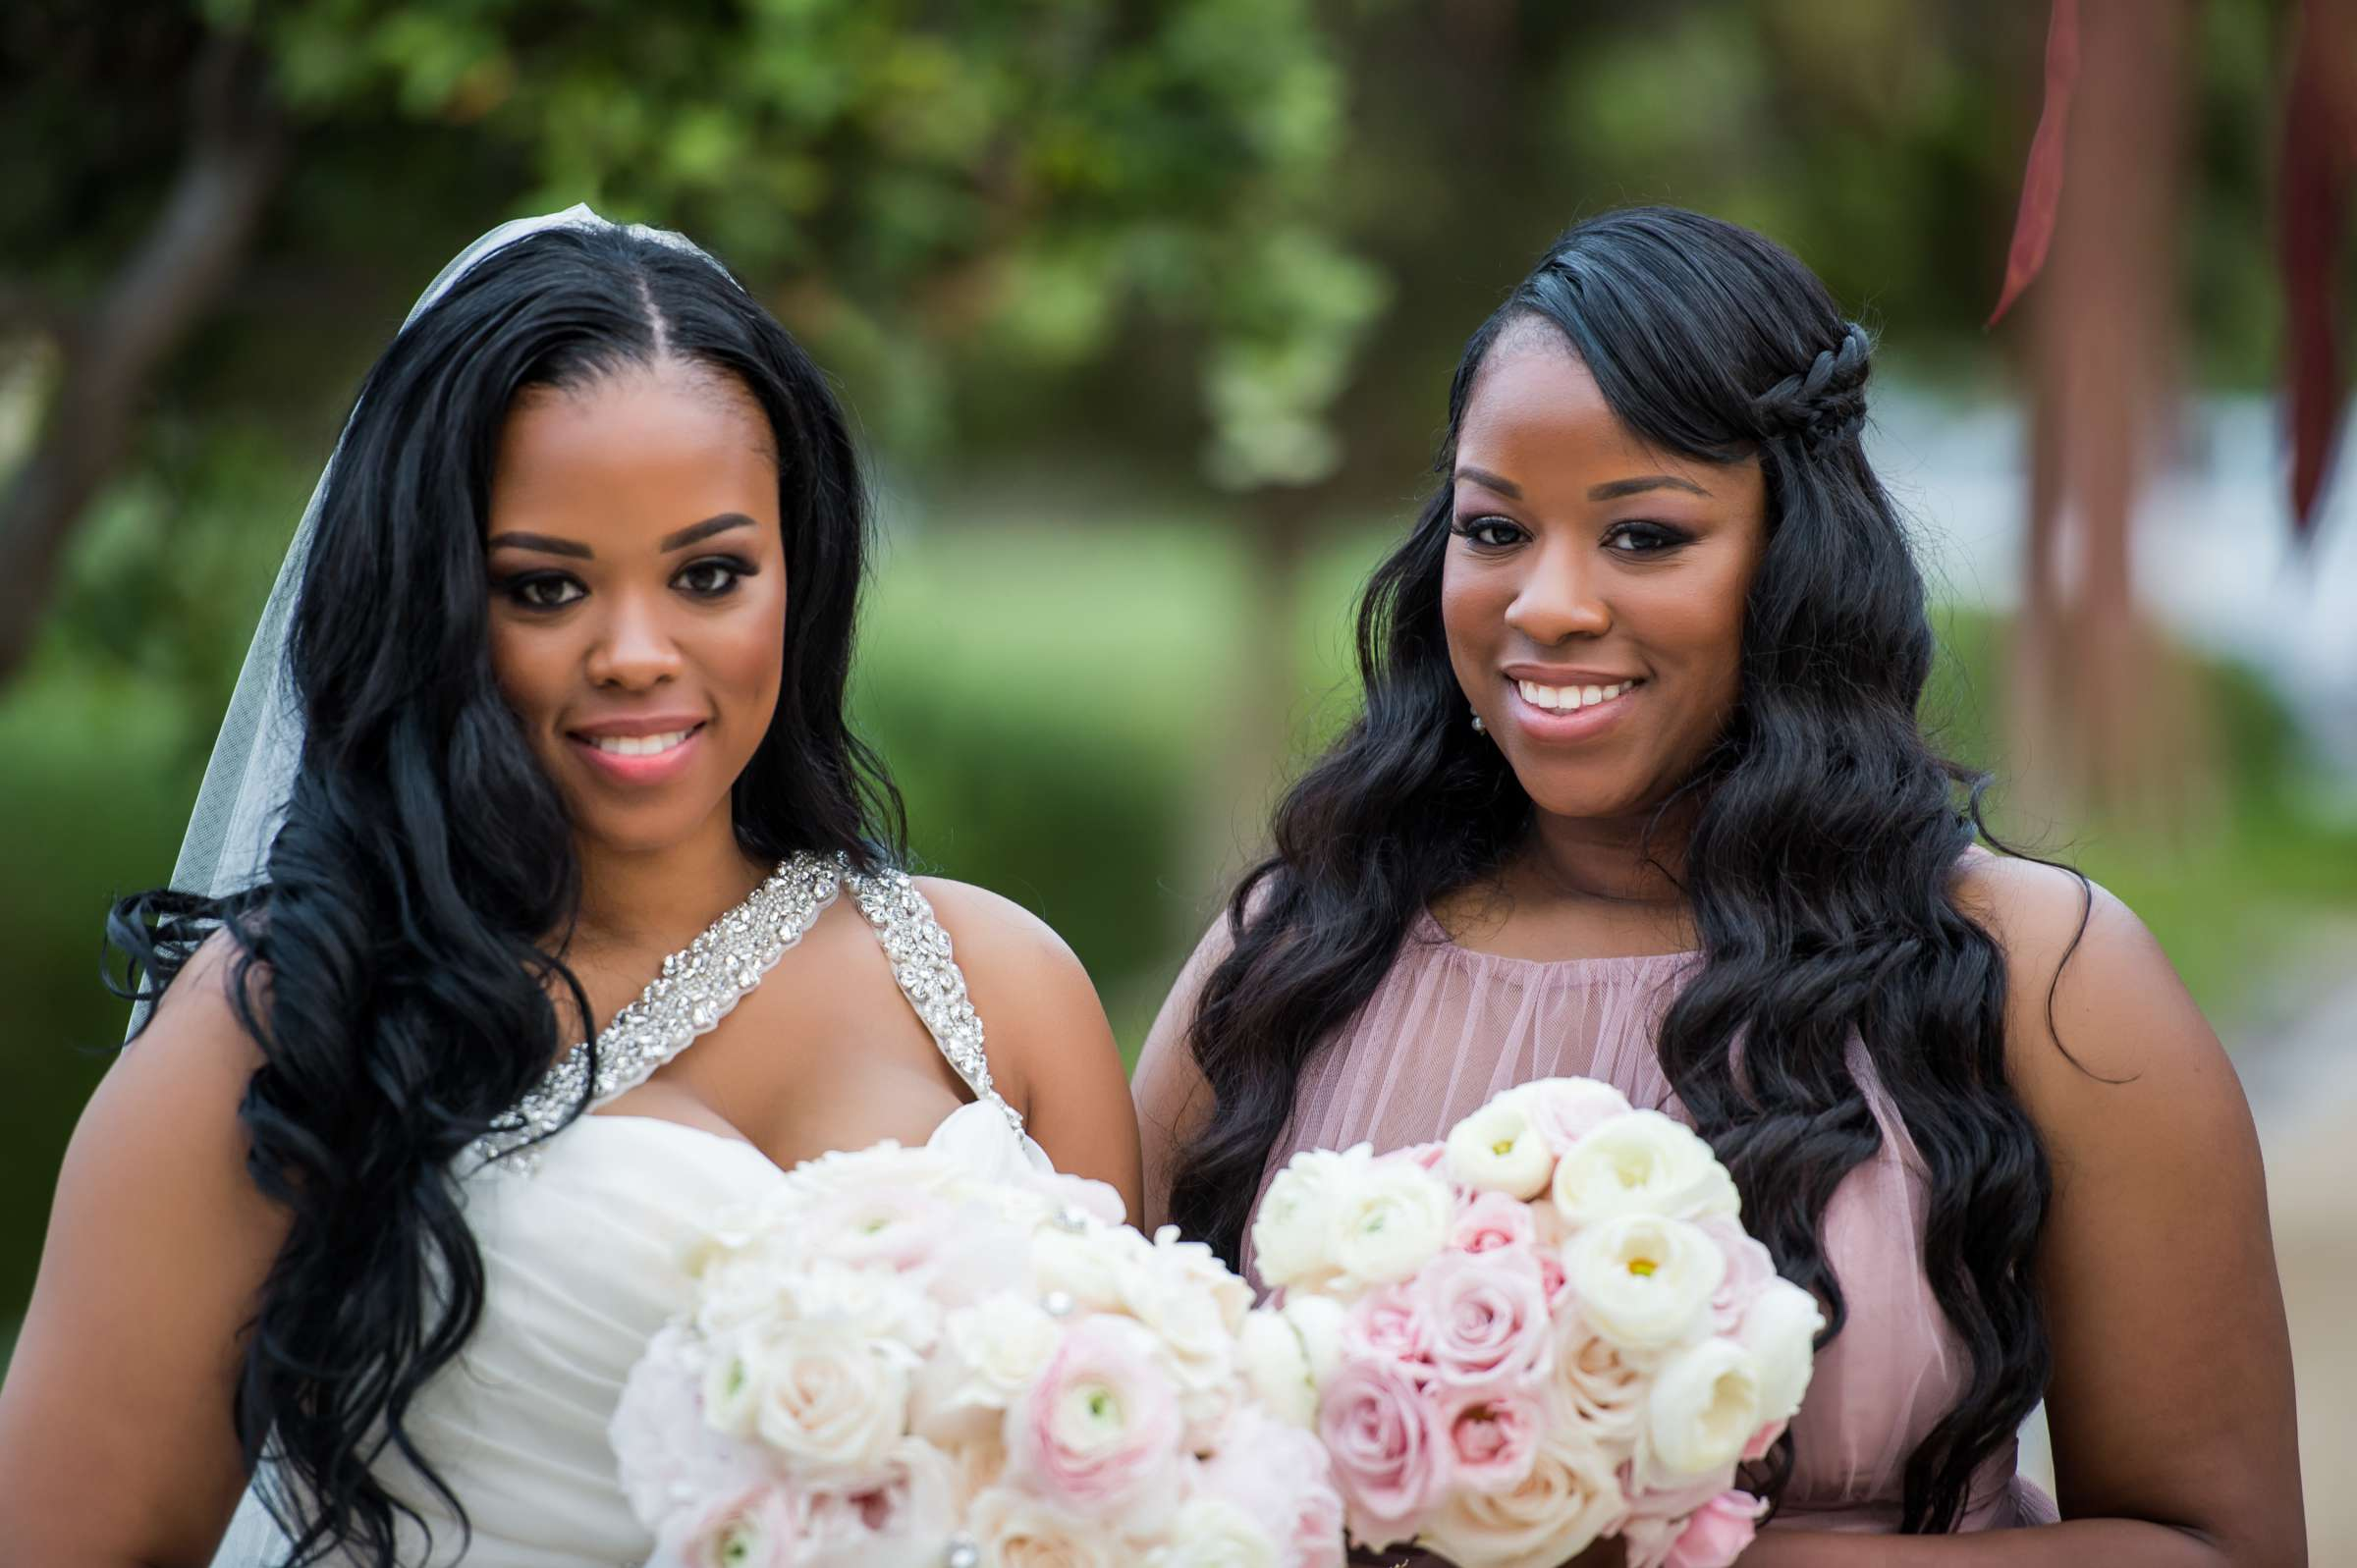 Coronado Community Center Wedding coordinated by First Comes Love Weddings & Events, Nikia and Charles Wedding Photo #27 by True Photography